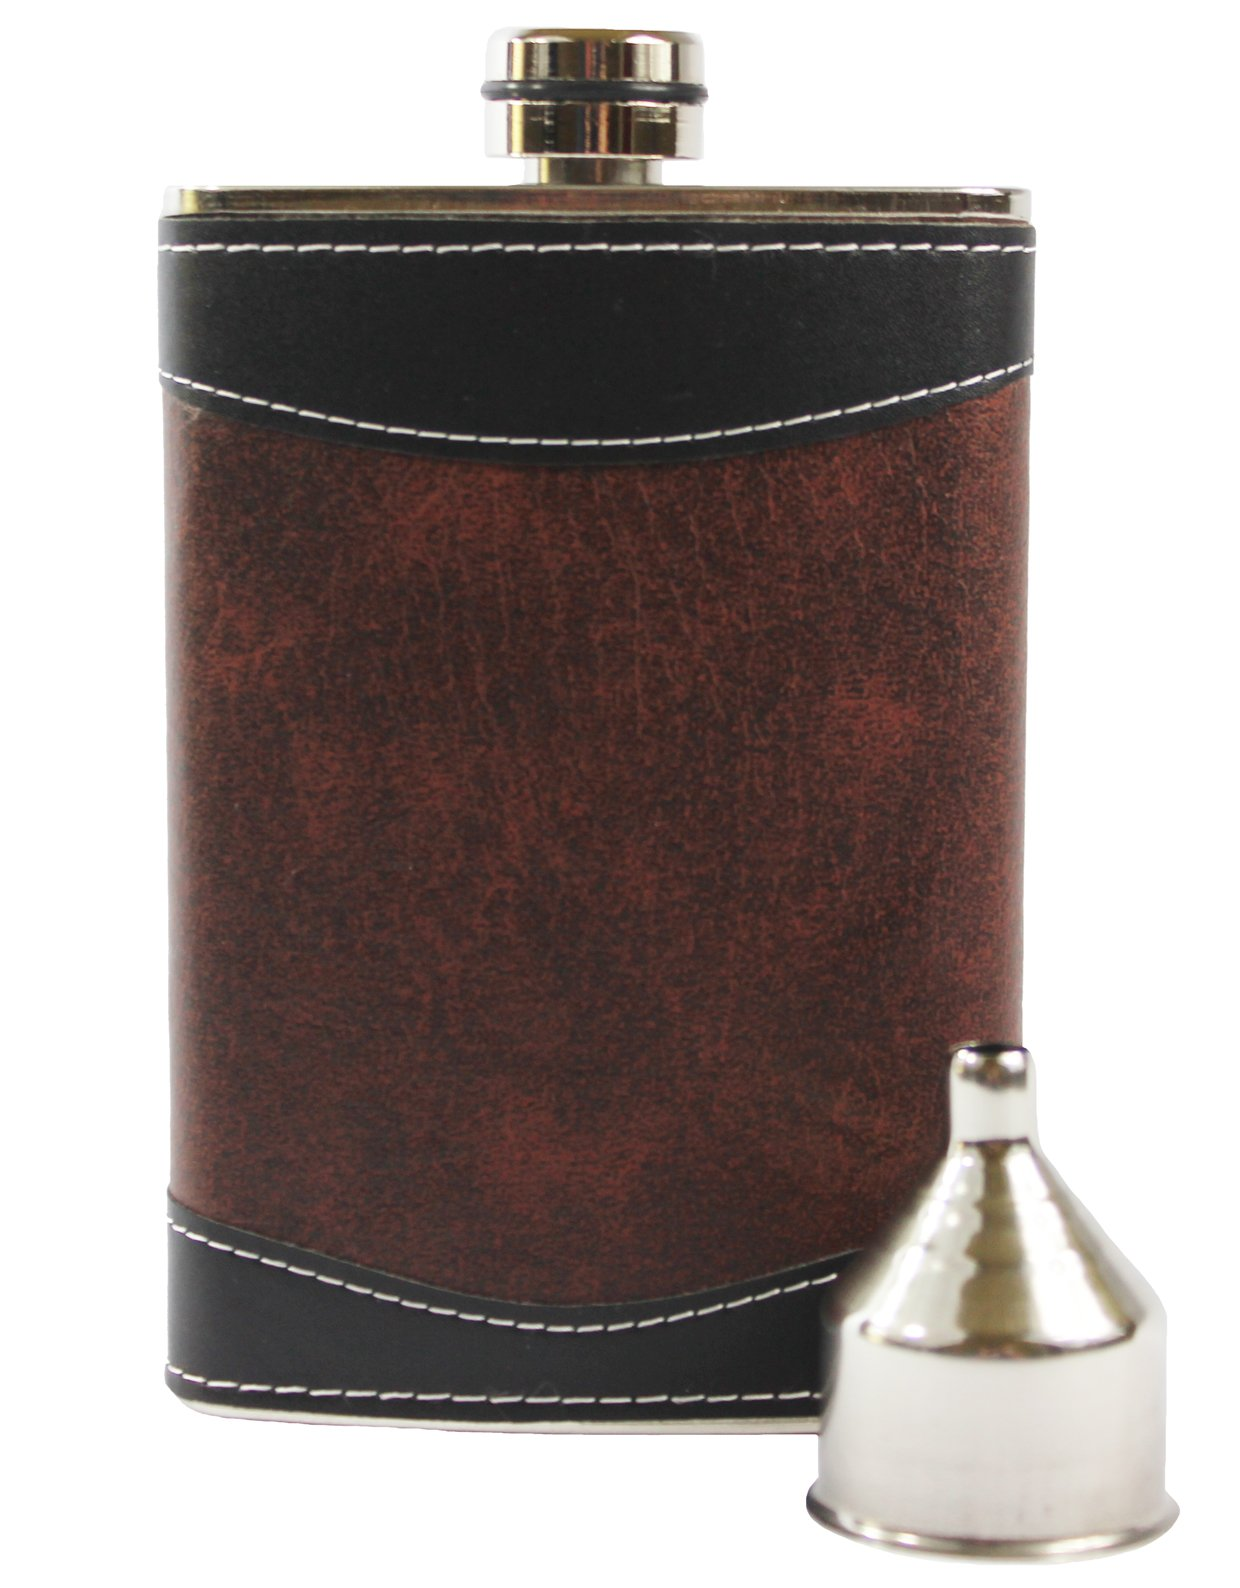 8oz Stainless Steel Primo 18/8#304 Brown/Black PU Leather Premium/Heavy Duty Hip Flask Gift Set - Includes Funnel and Gift Box